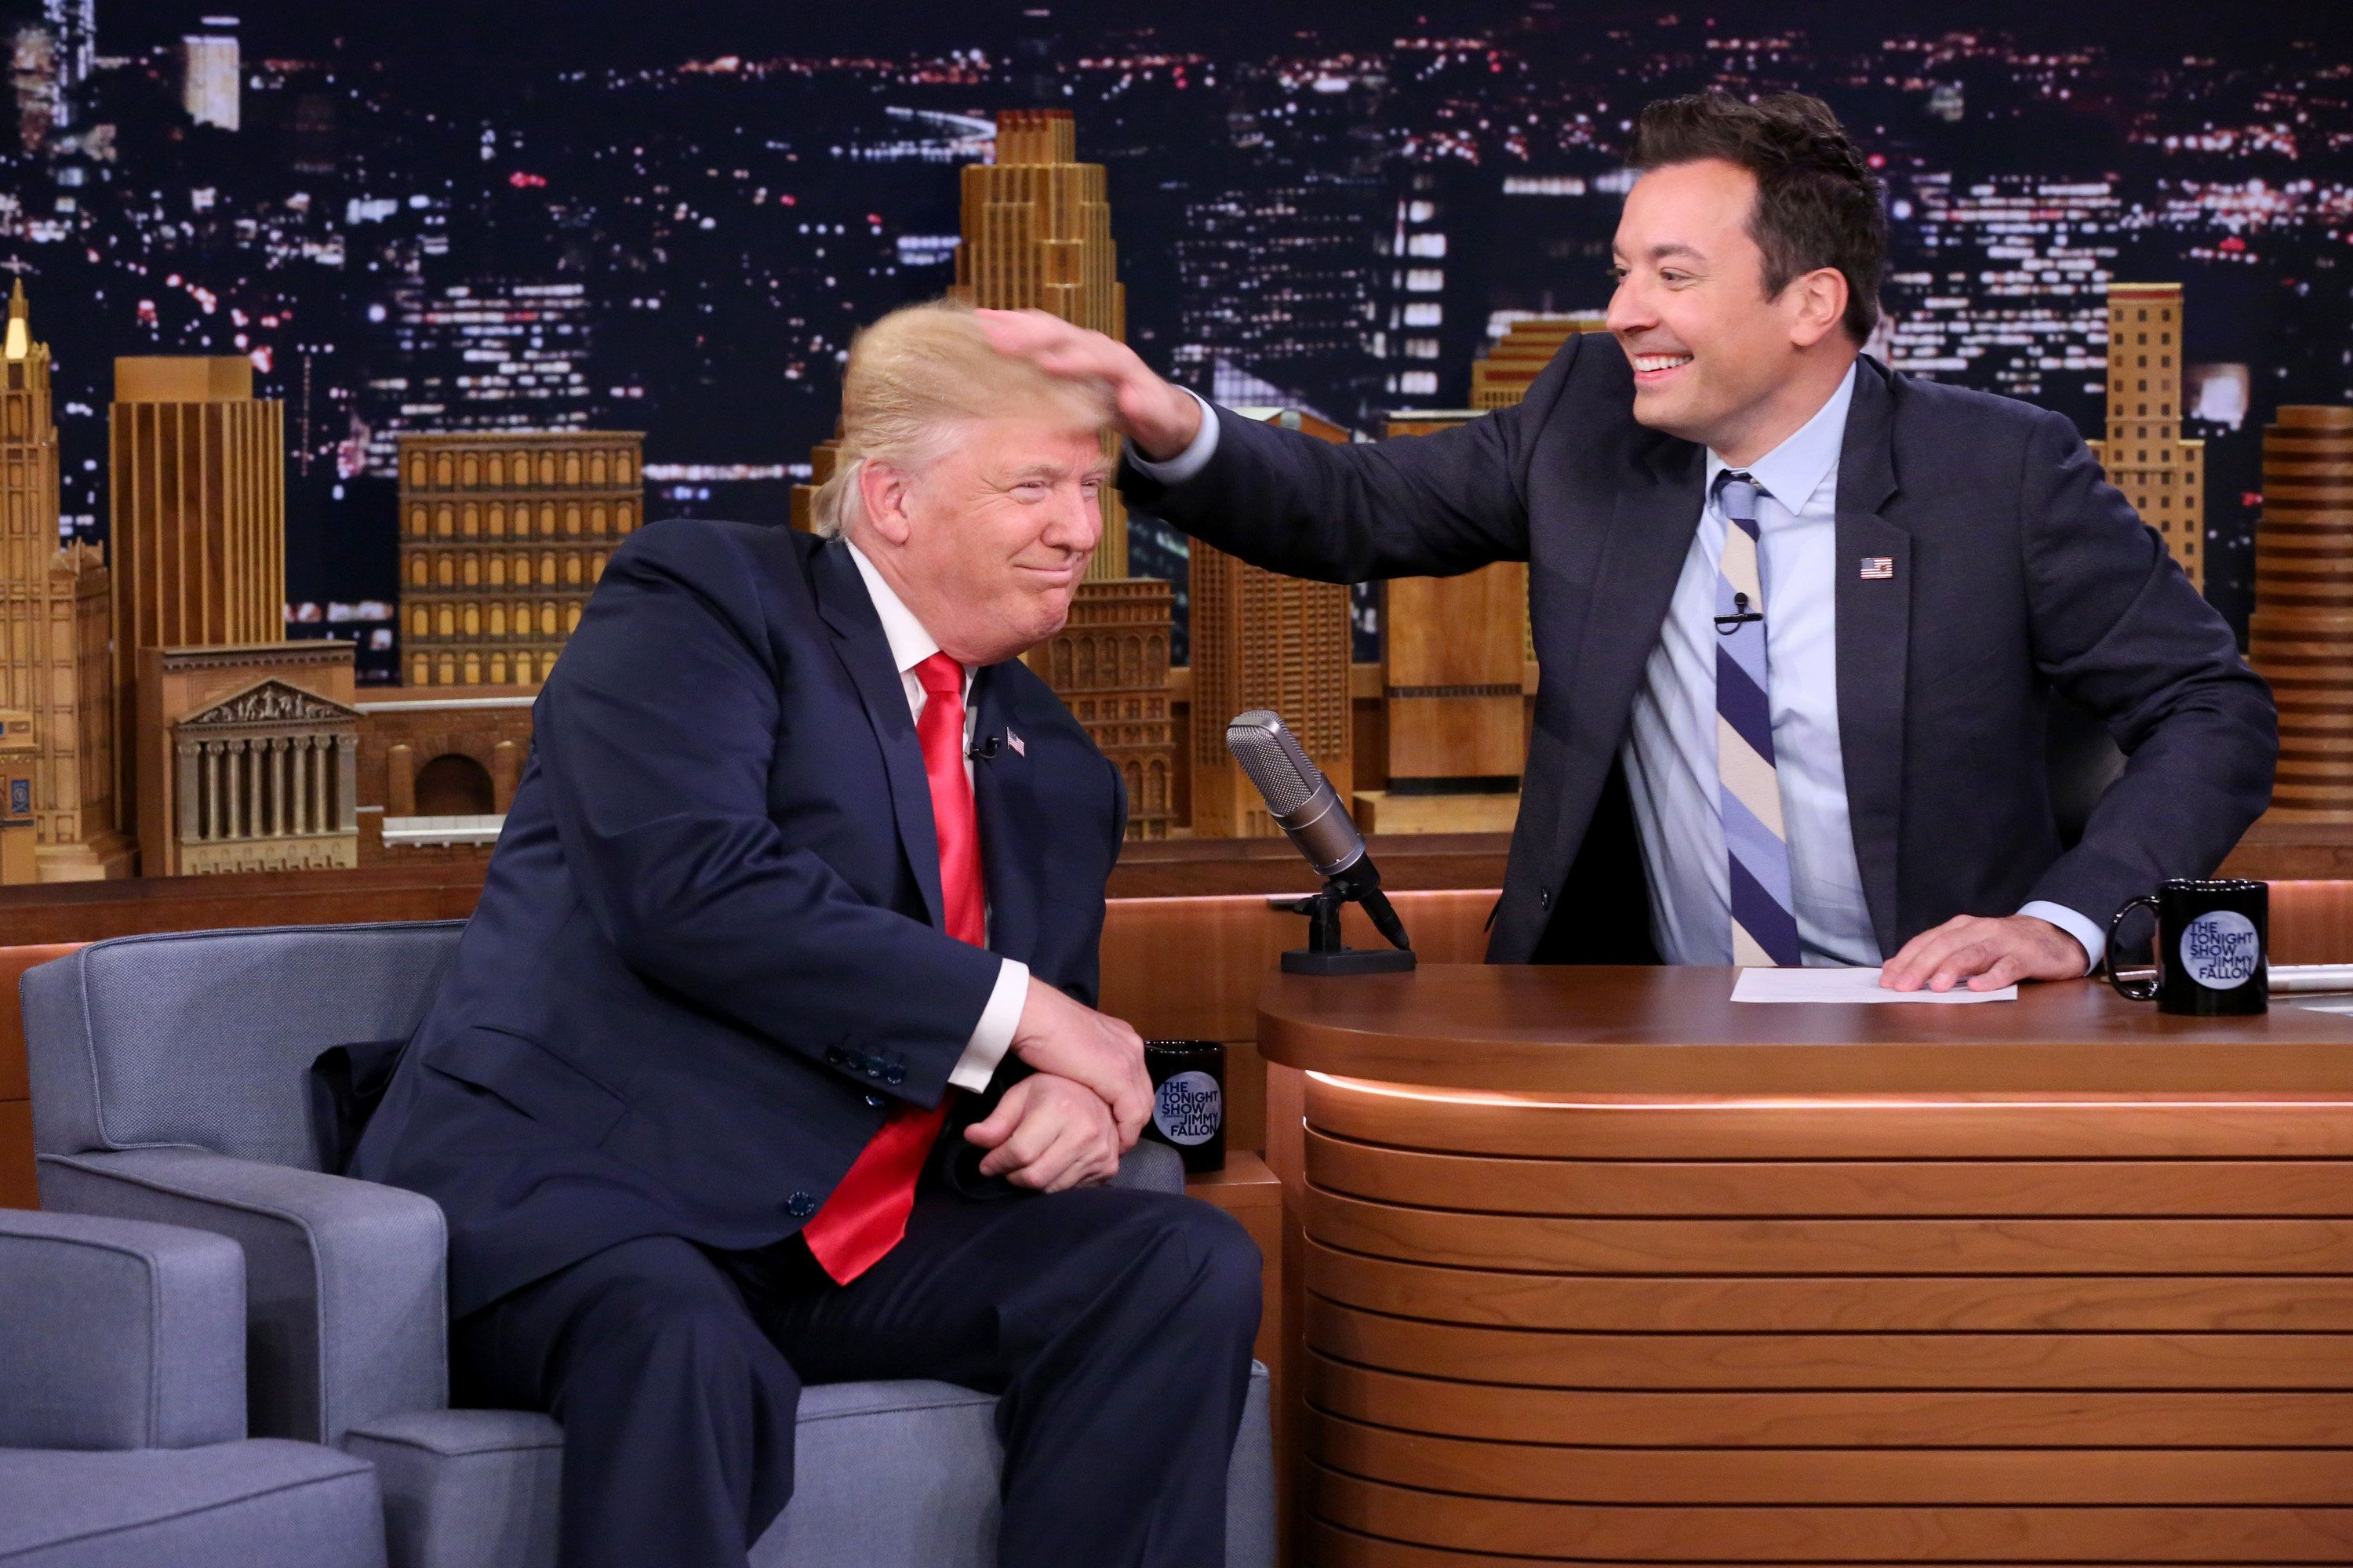 "<a href=""http://www.huffingtonpost.com/entry/jimmy-fallon-donald-trump_us_57dbecd4e4b0071a6e06801e"">Viewership has been down"